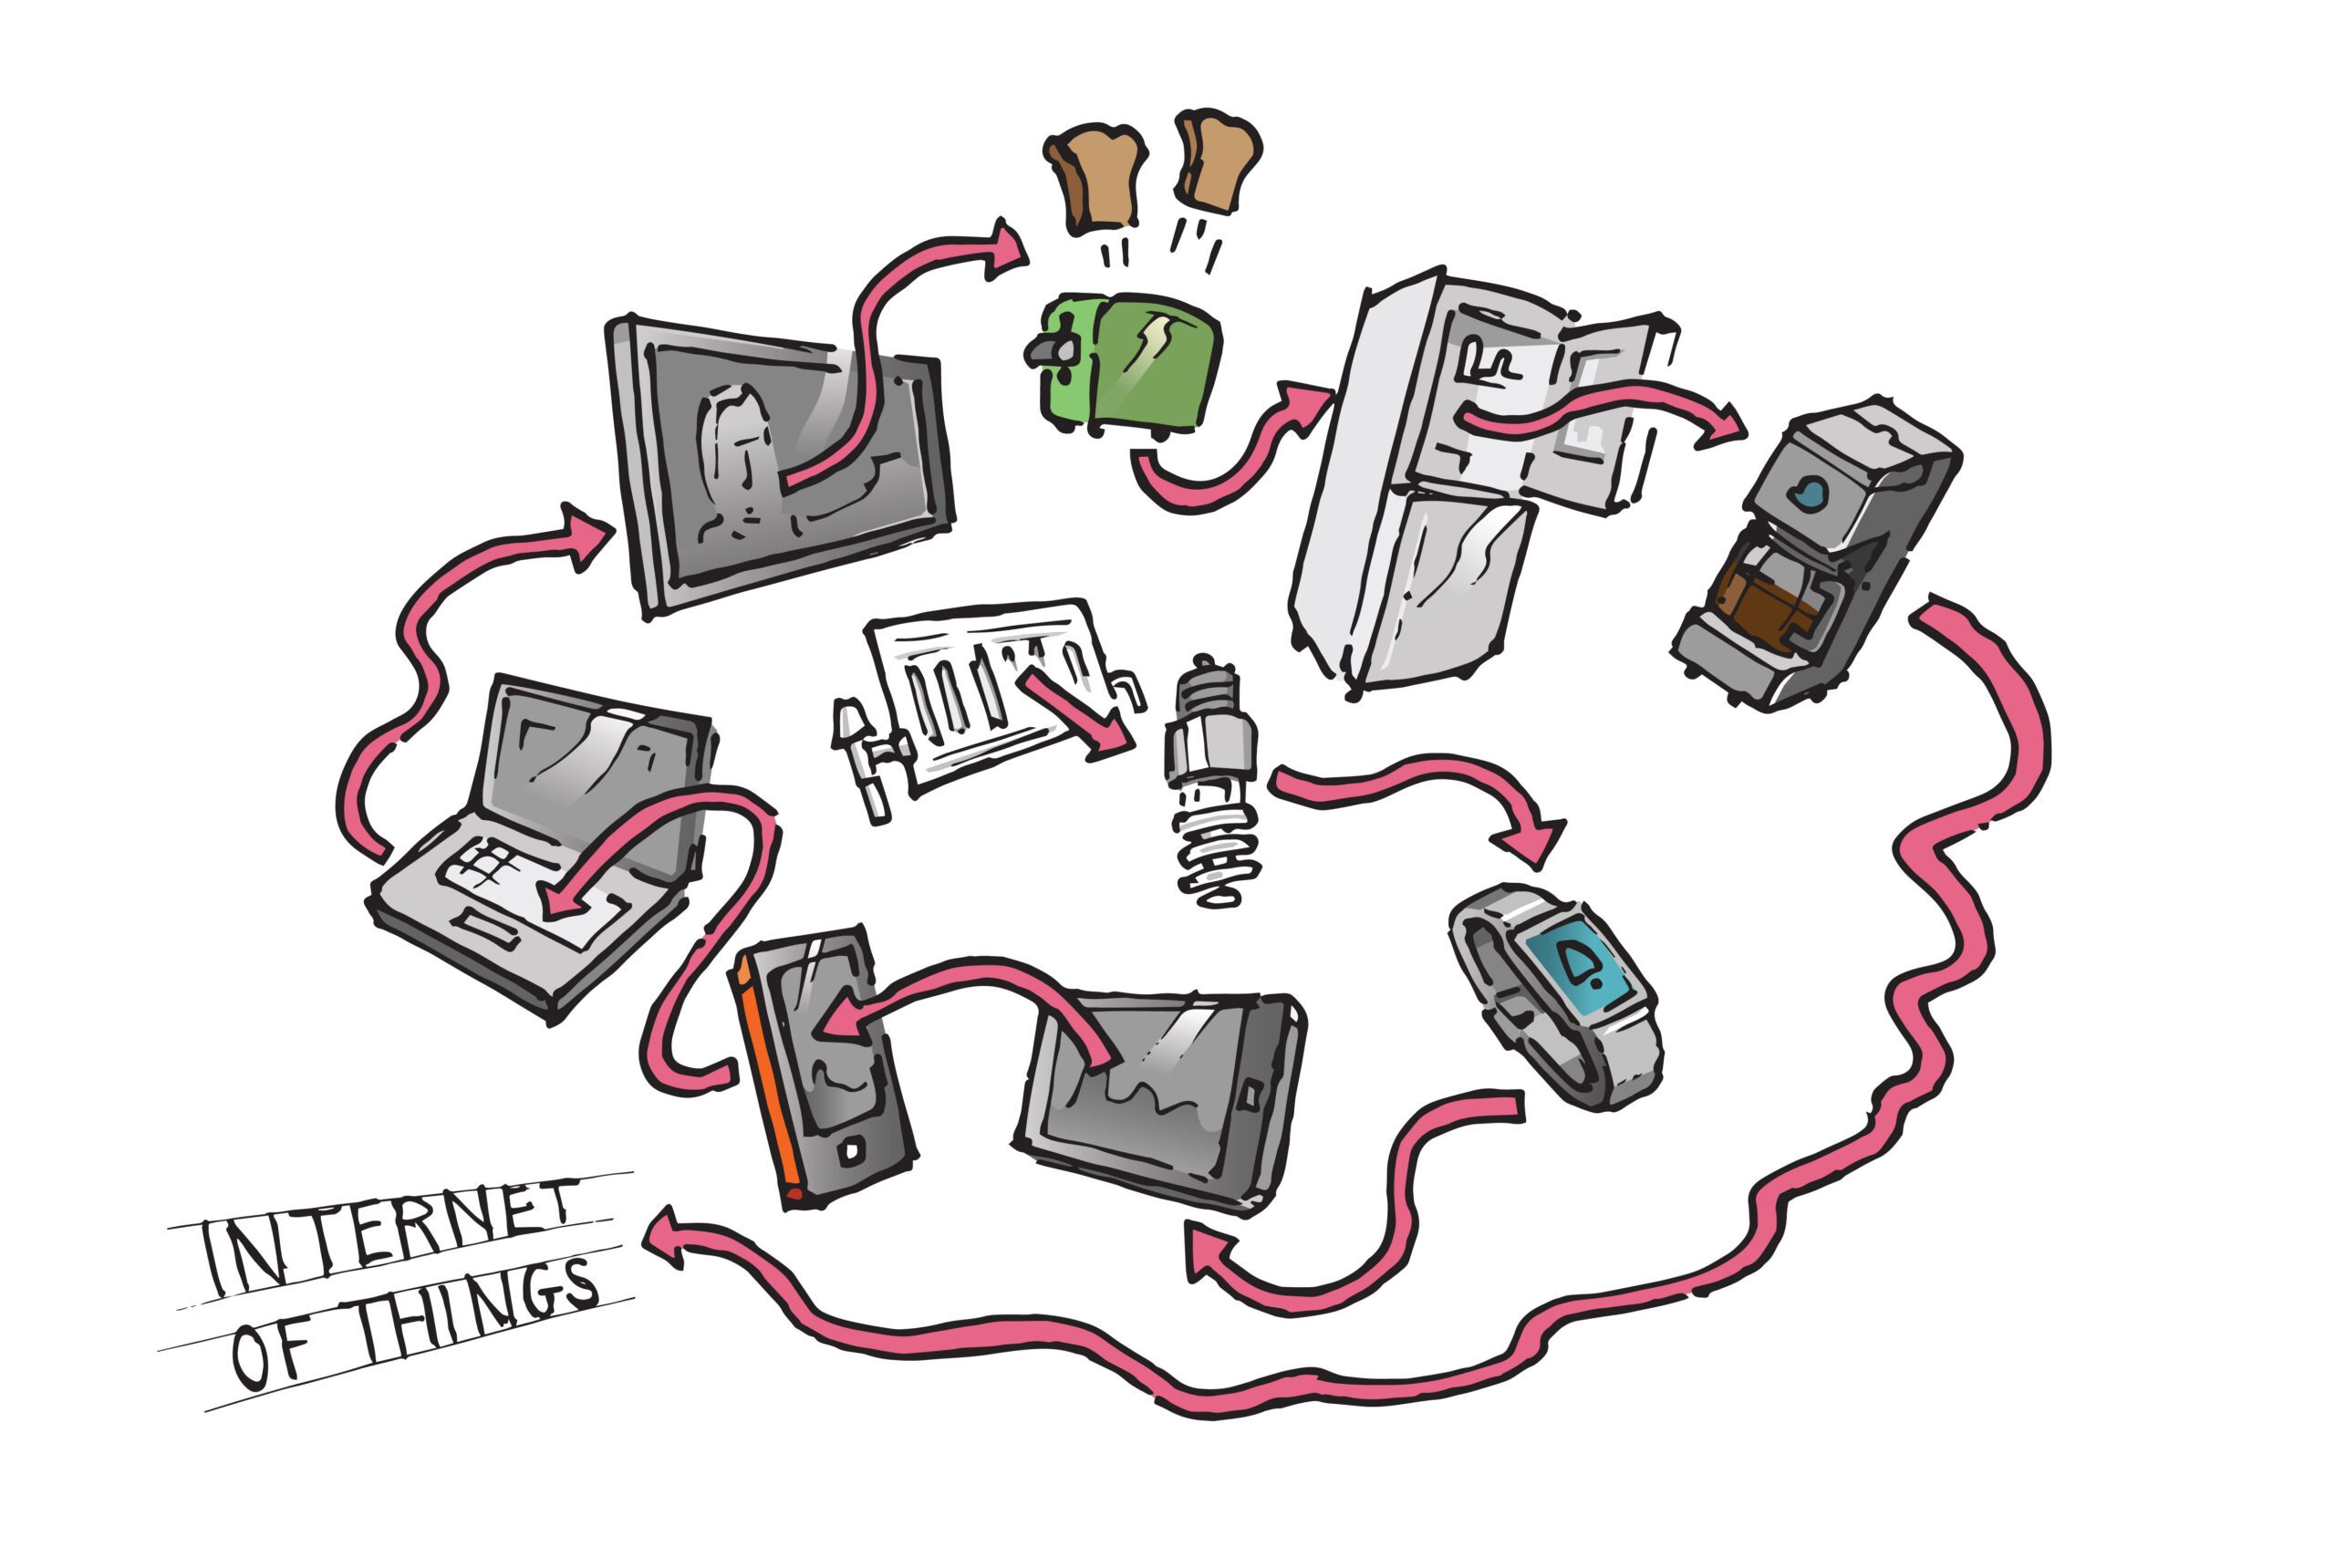 Did You Know 87% of People Have NOT Heard the Term IoT?